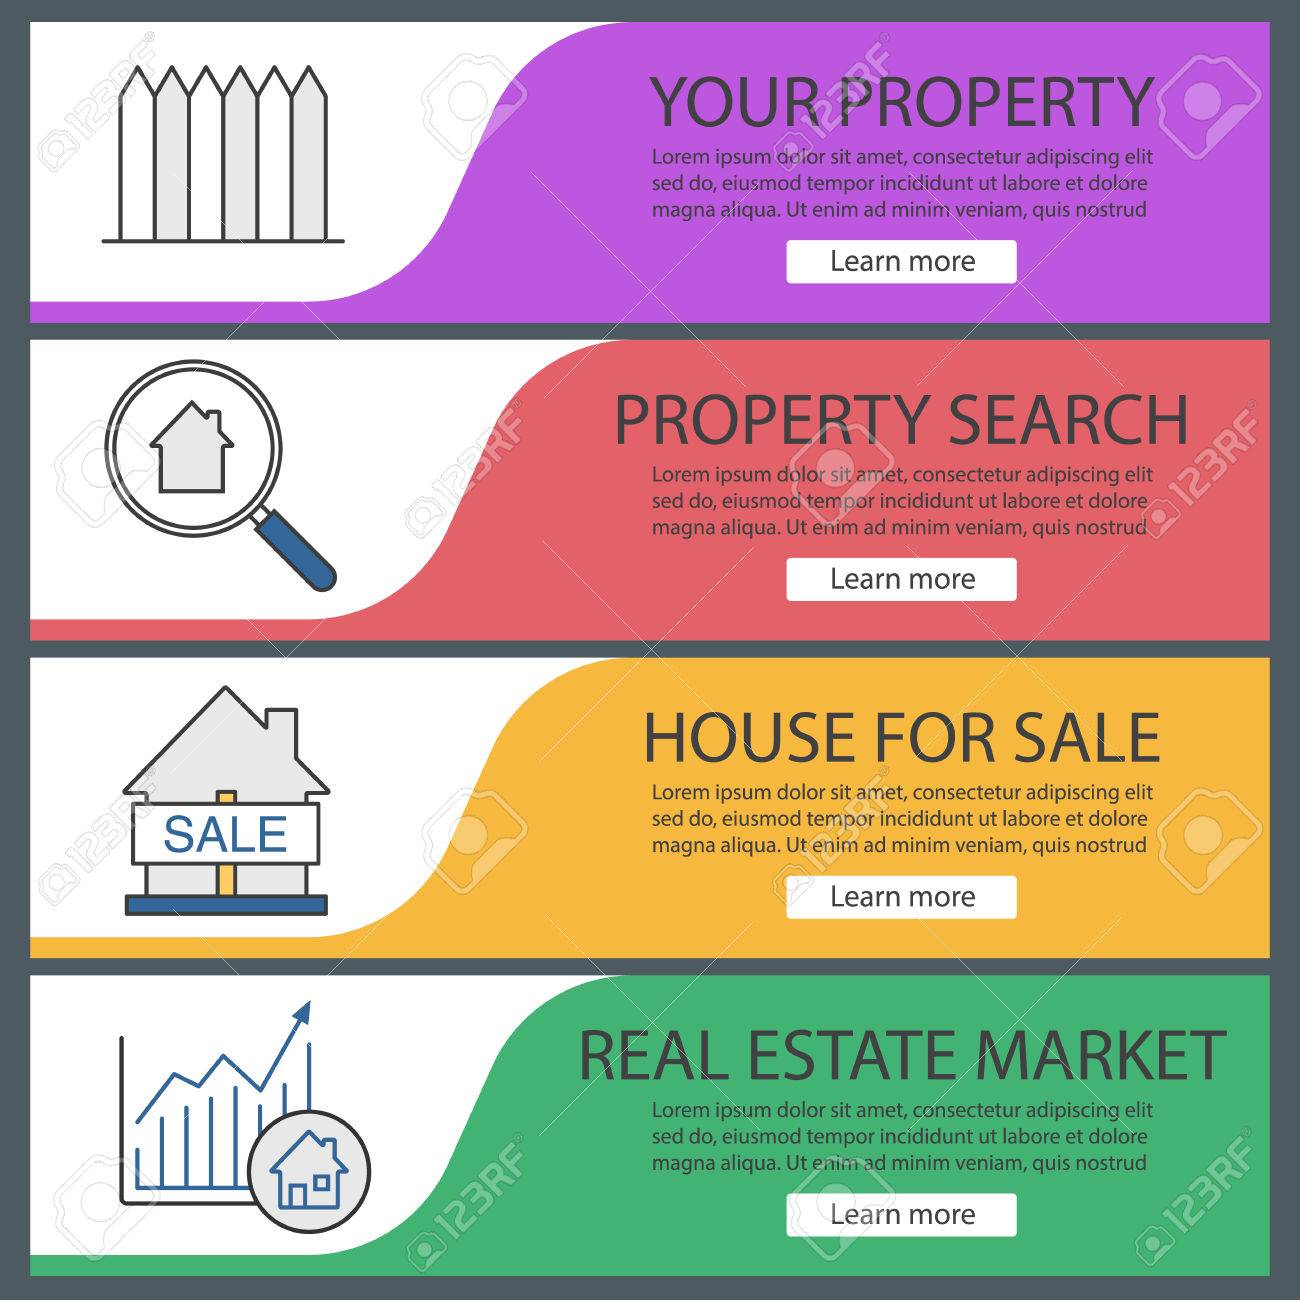 Real Estate Market Web Banner Templates Set Fence Property Royalty Free Cliparts Vectors And Stock Illustration Image 84523129